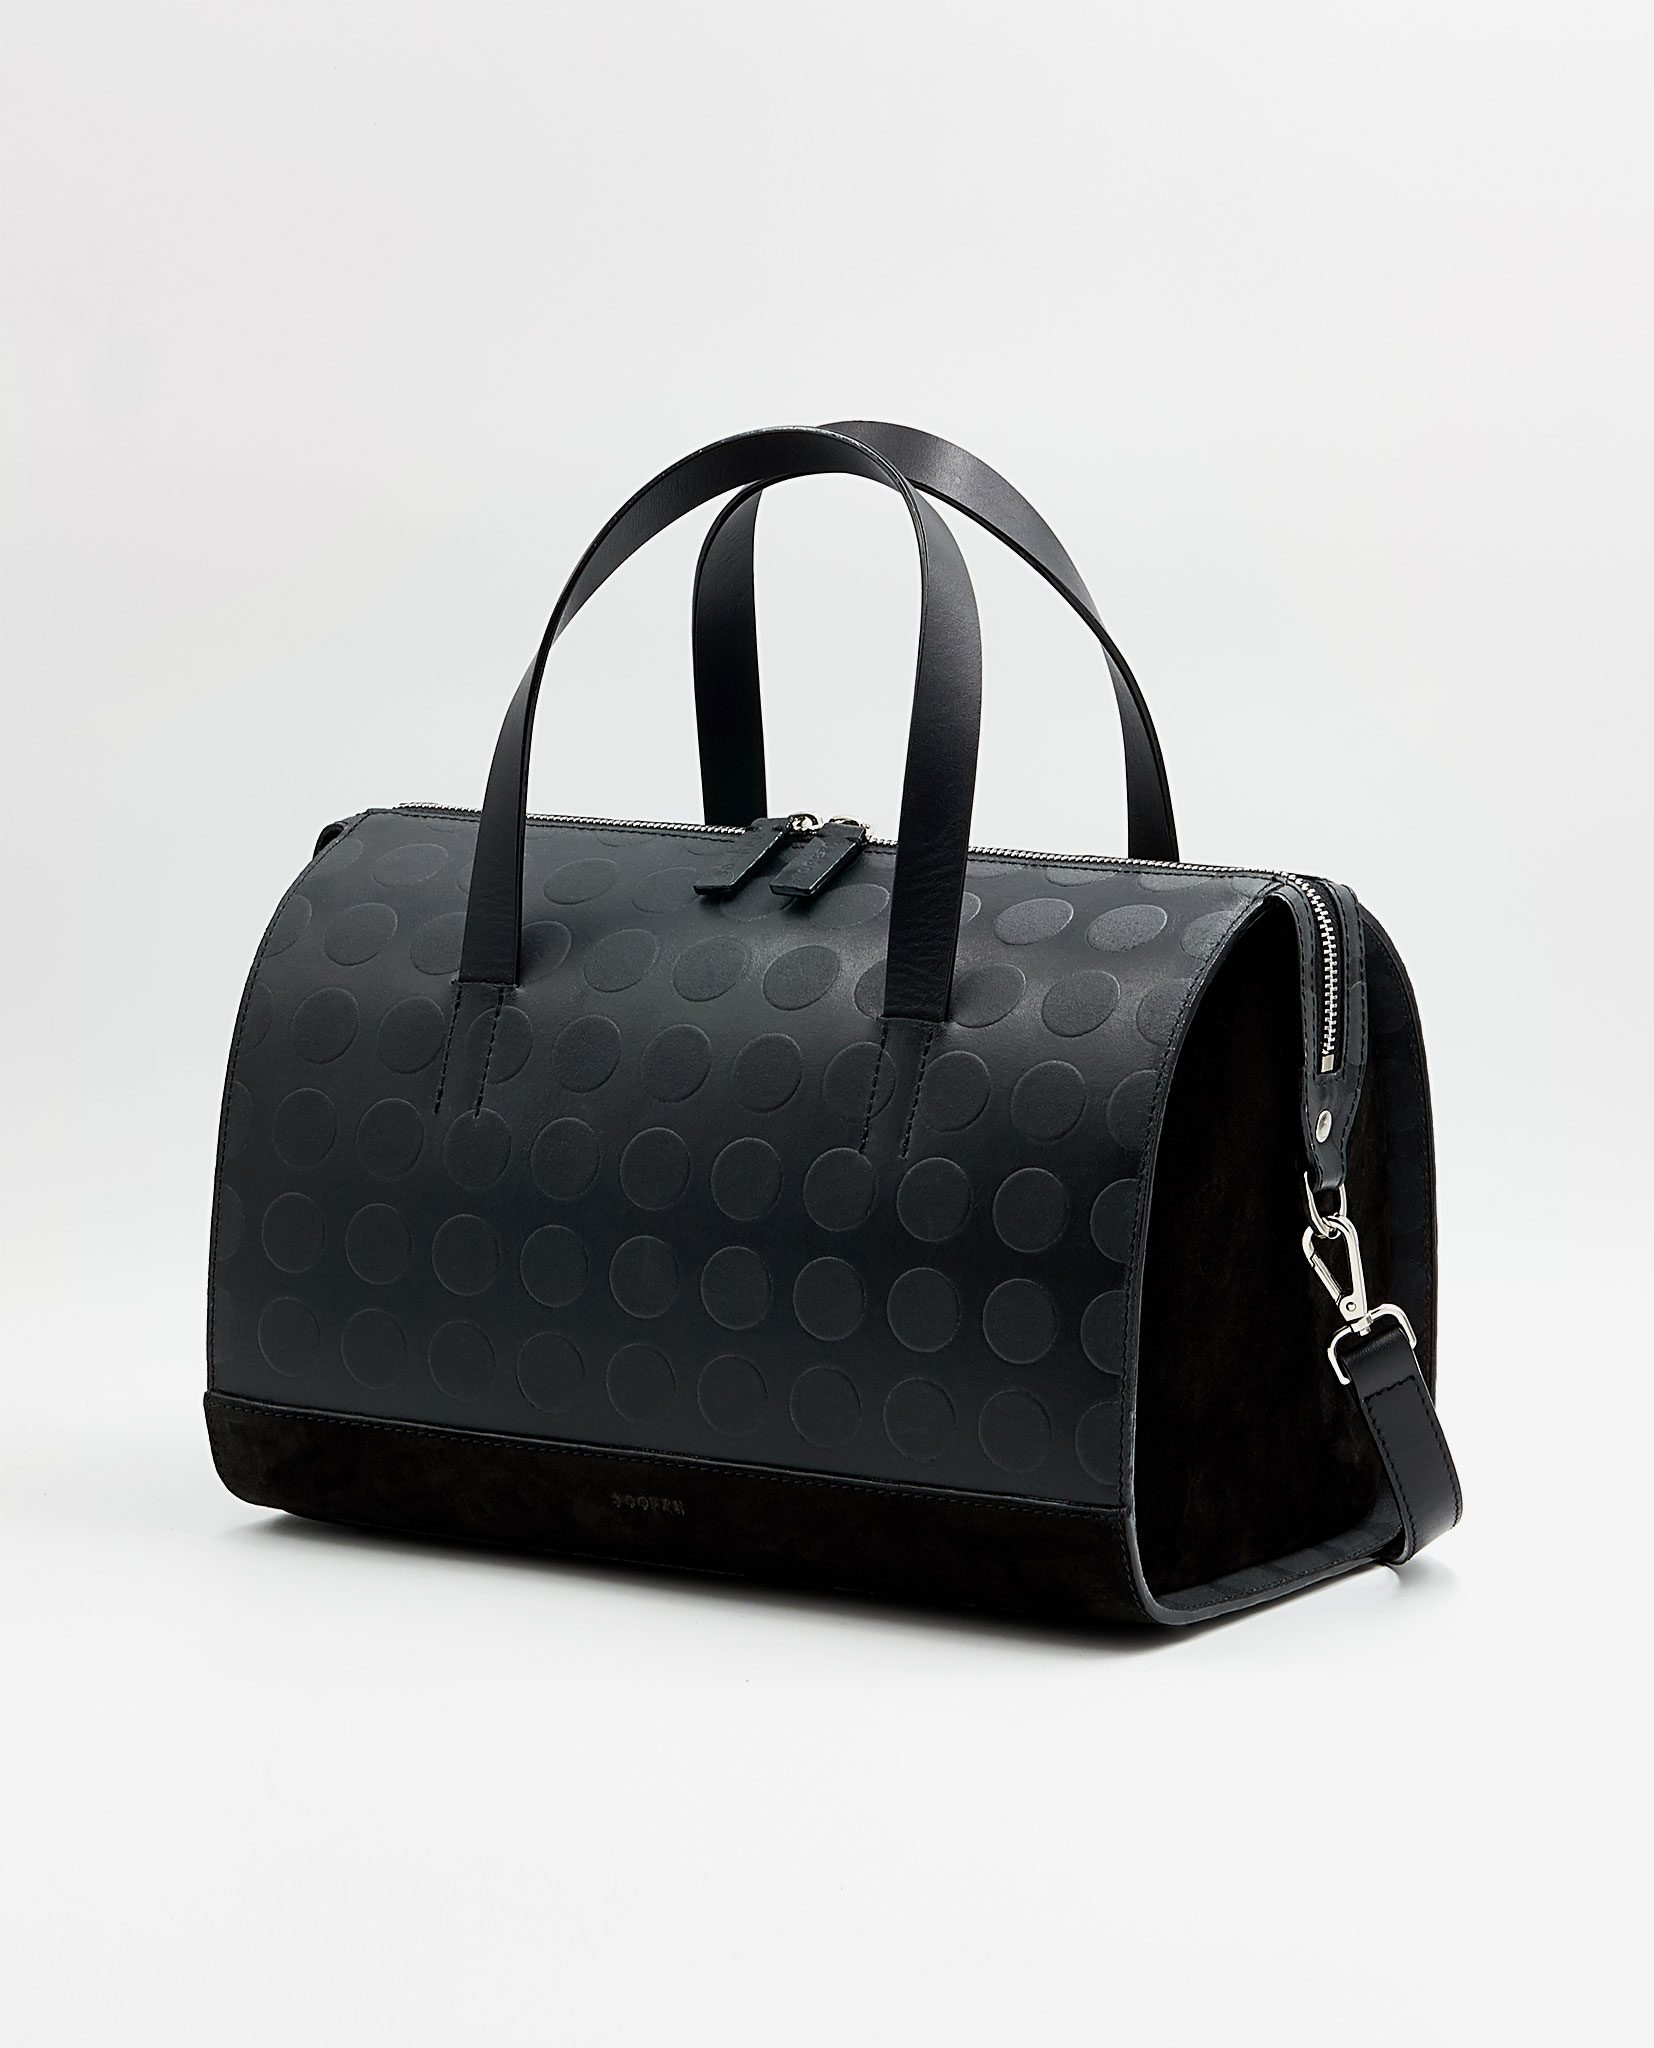 SOOFRE Berlin unique Bowler Bag dotted black/ black